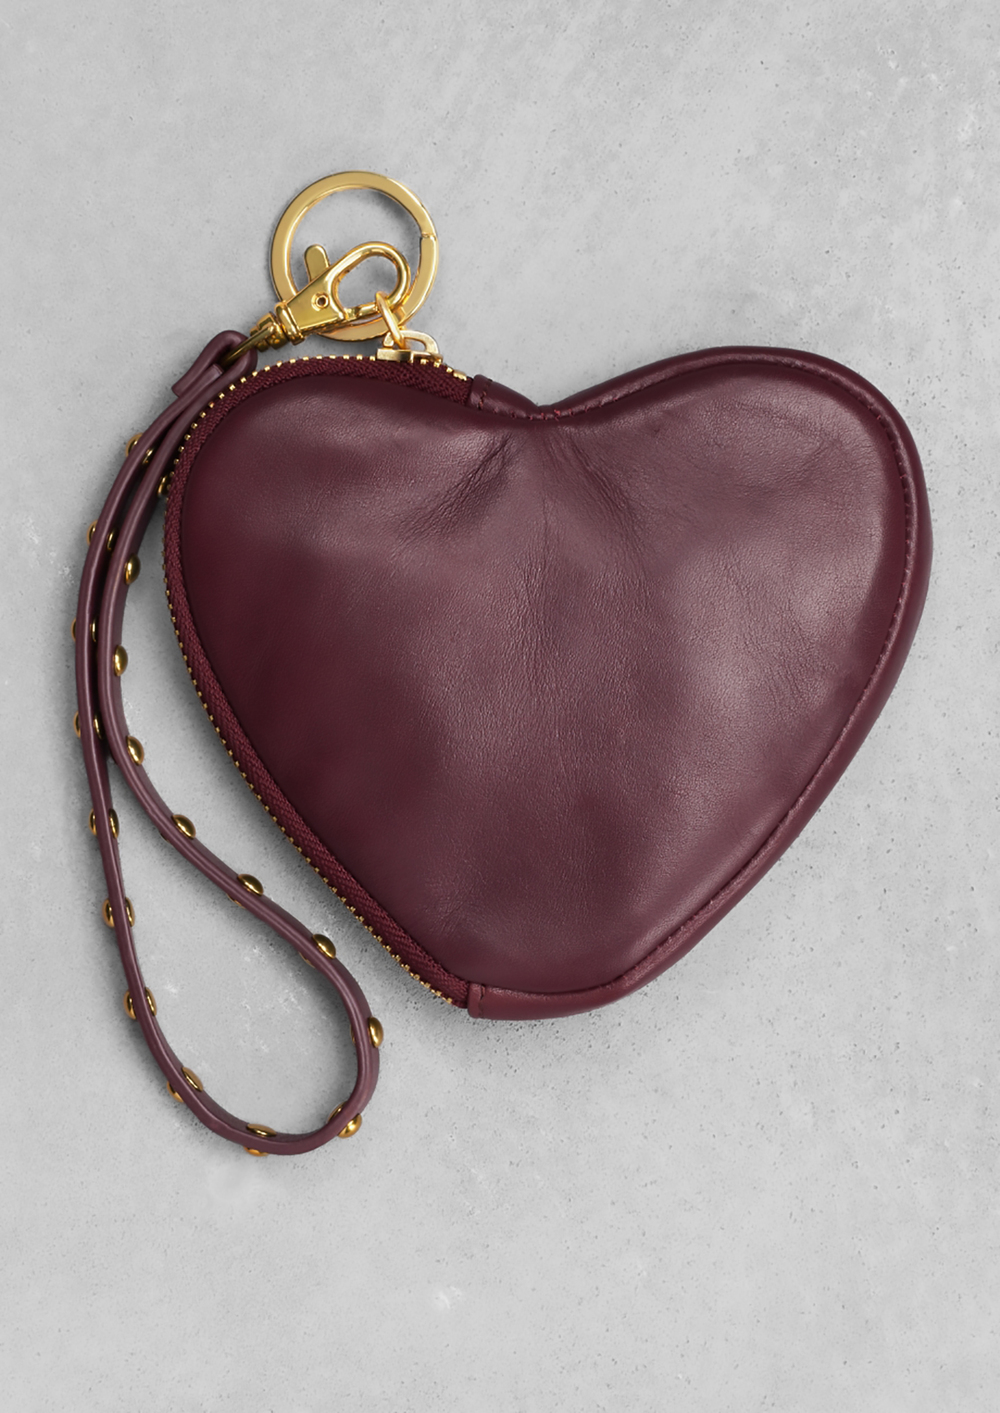 &otherstories leather heart pouch 1500.jpg